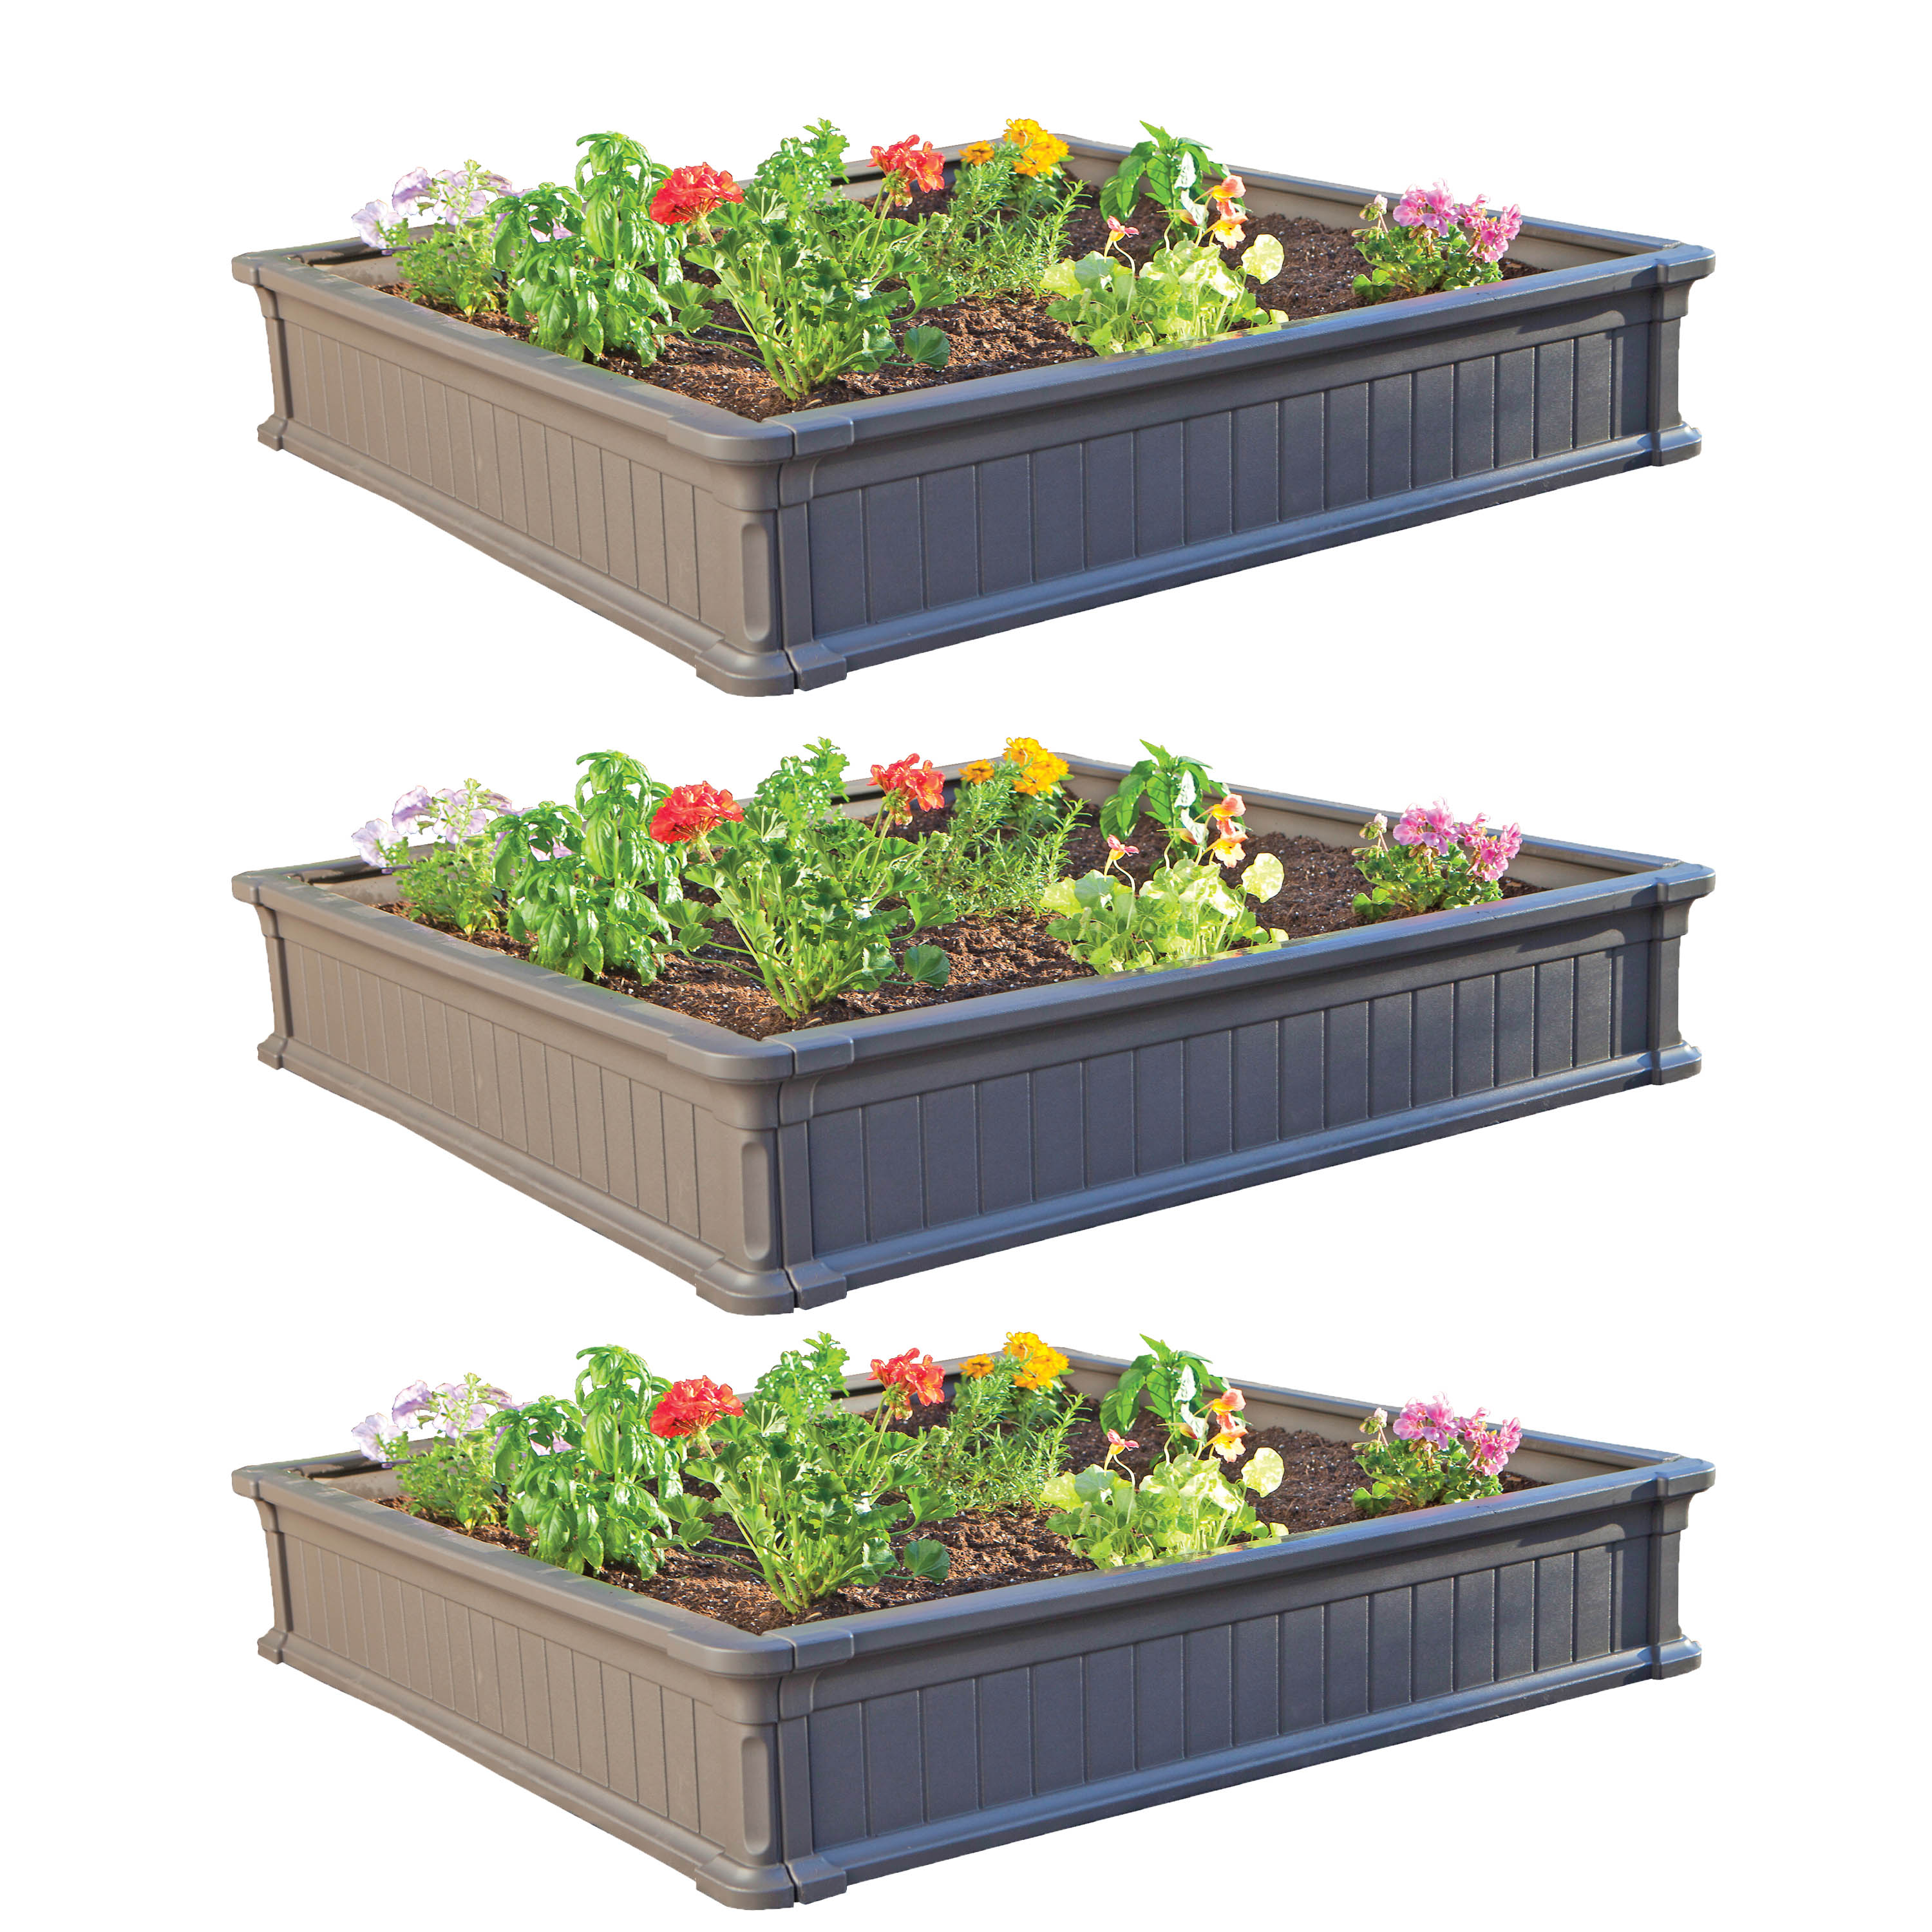 Lifetime 4' x 4' Raised Garden Kit (3 Beds), 60069